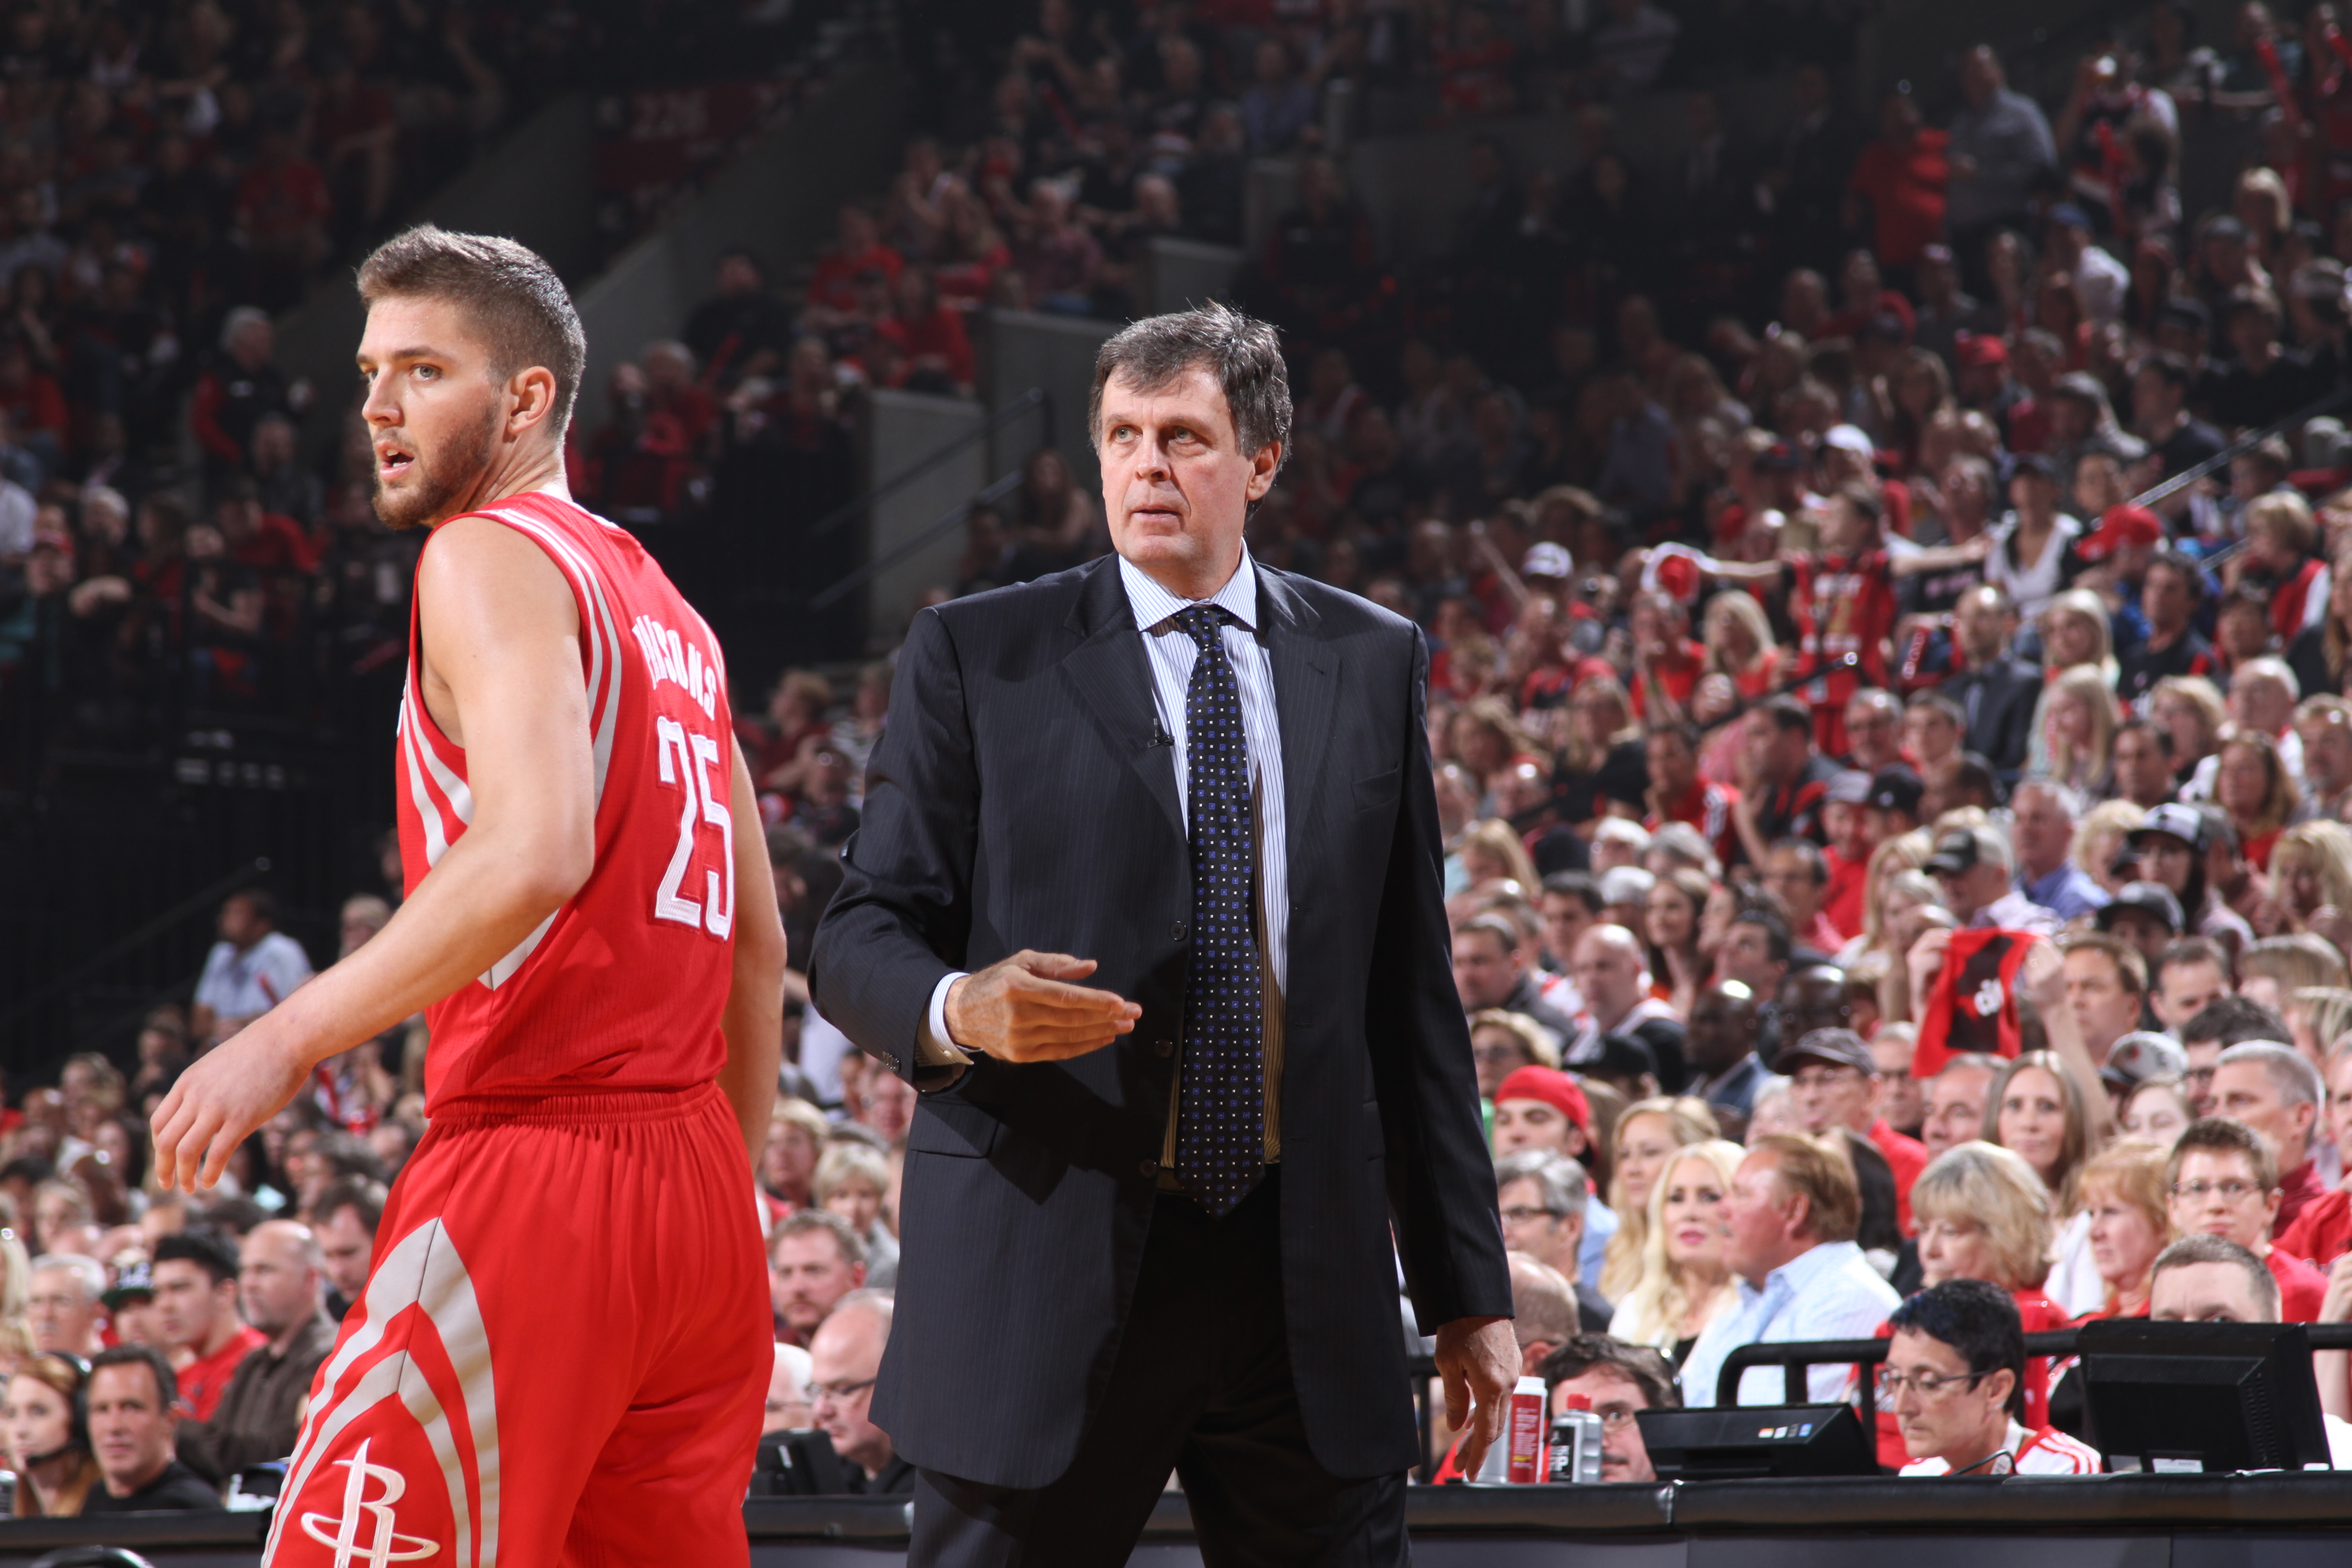 At a salary of $926,000 last season, Rockets forward Chandler Parsons was one of the better player deals in the league last year.